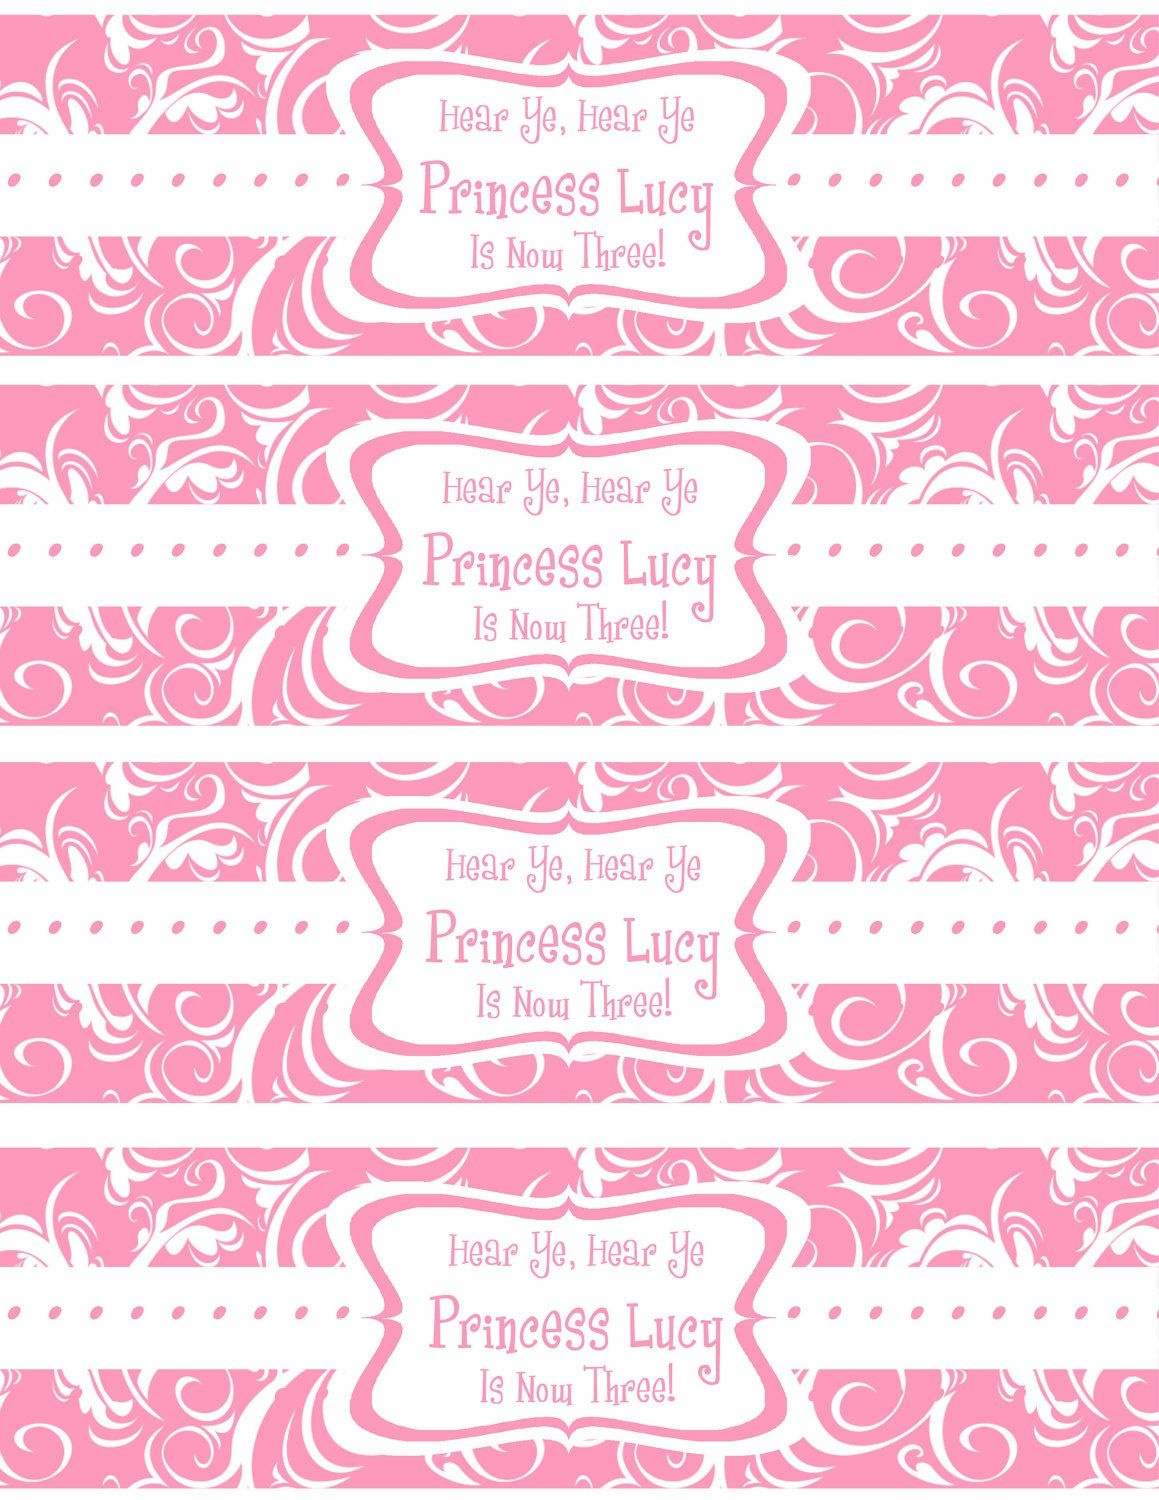 Free Printable Water Bottle Labels Template   Kreatief   Printable - Free Printable Water Bottle Label Template